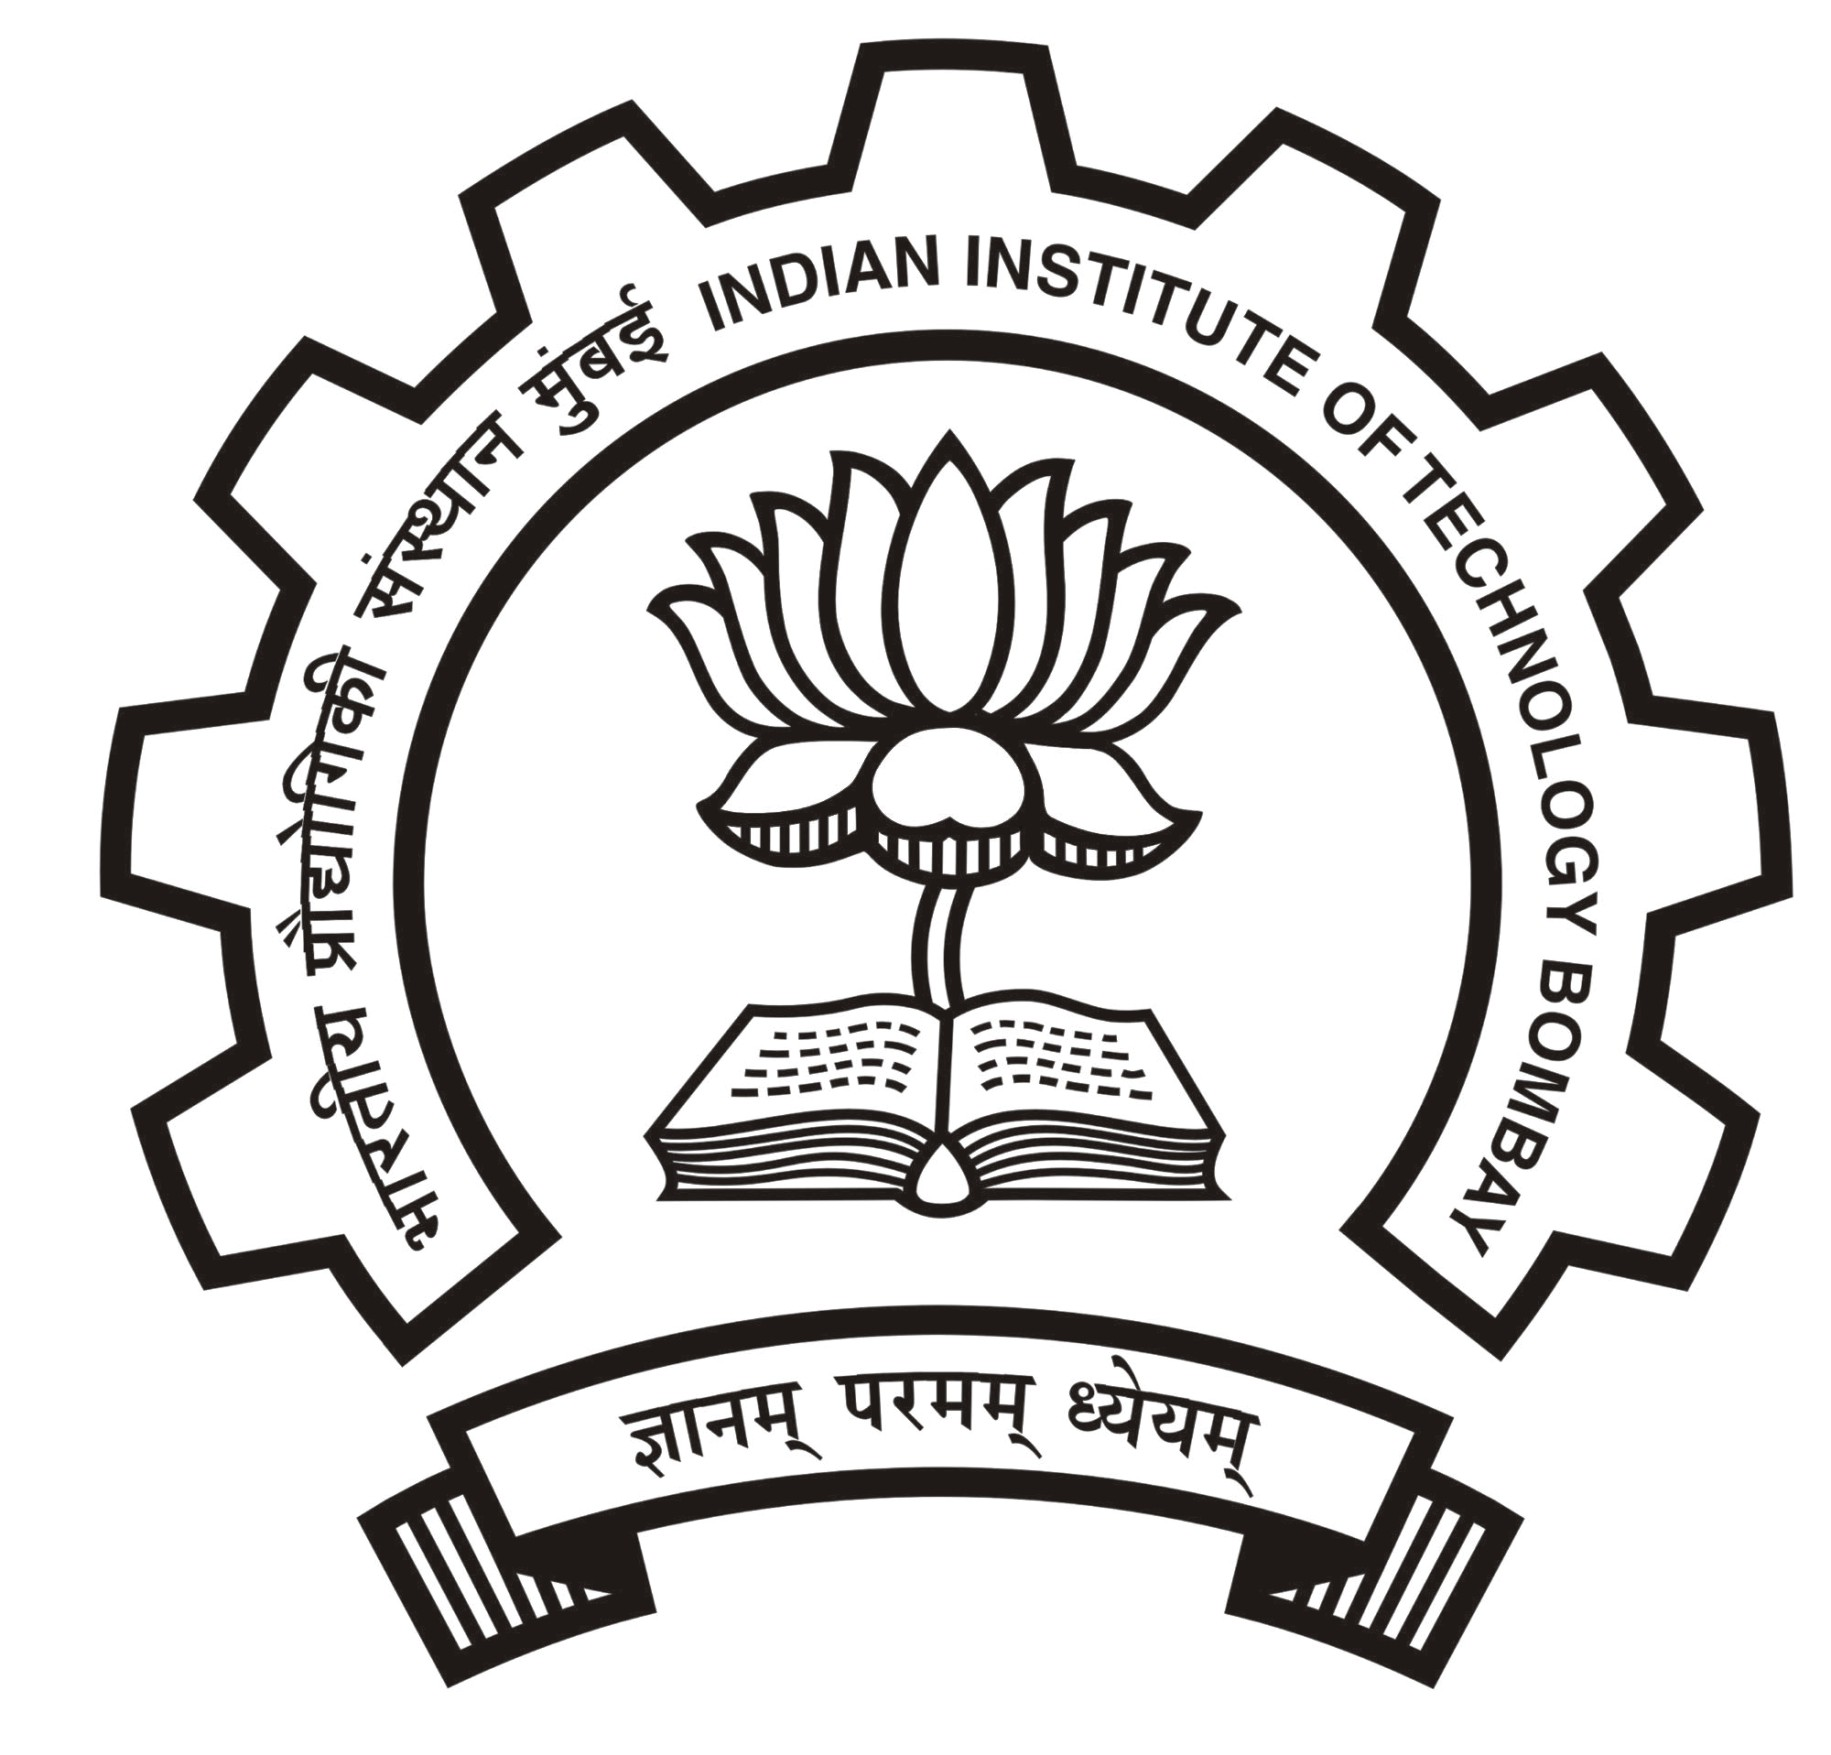 Requirement in indian institute of technology iit bombay sep 24 requirement in indian institute of technology iit bombay sep 24 biocorpaavc Images